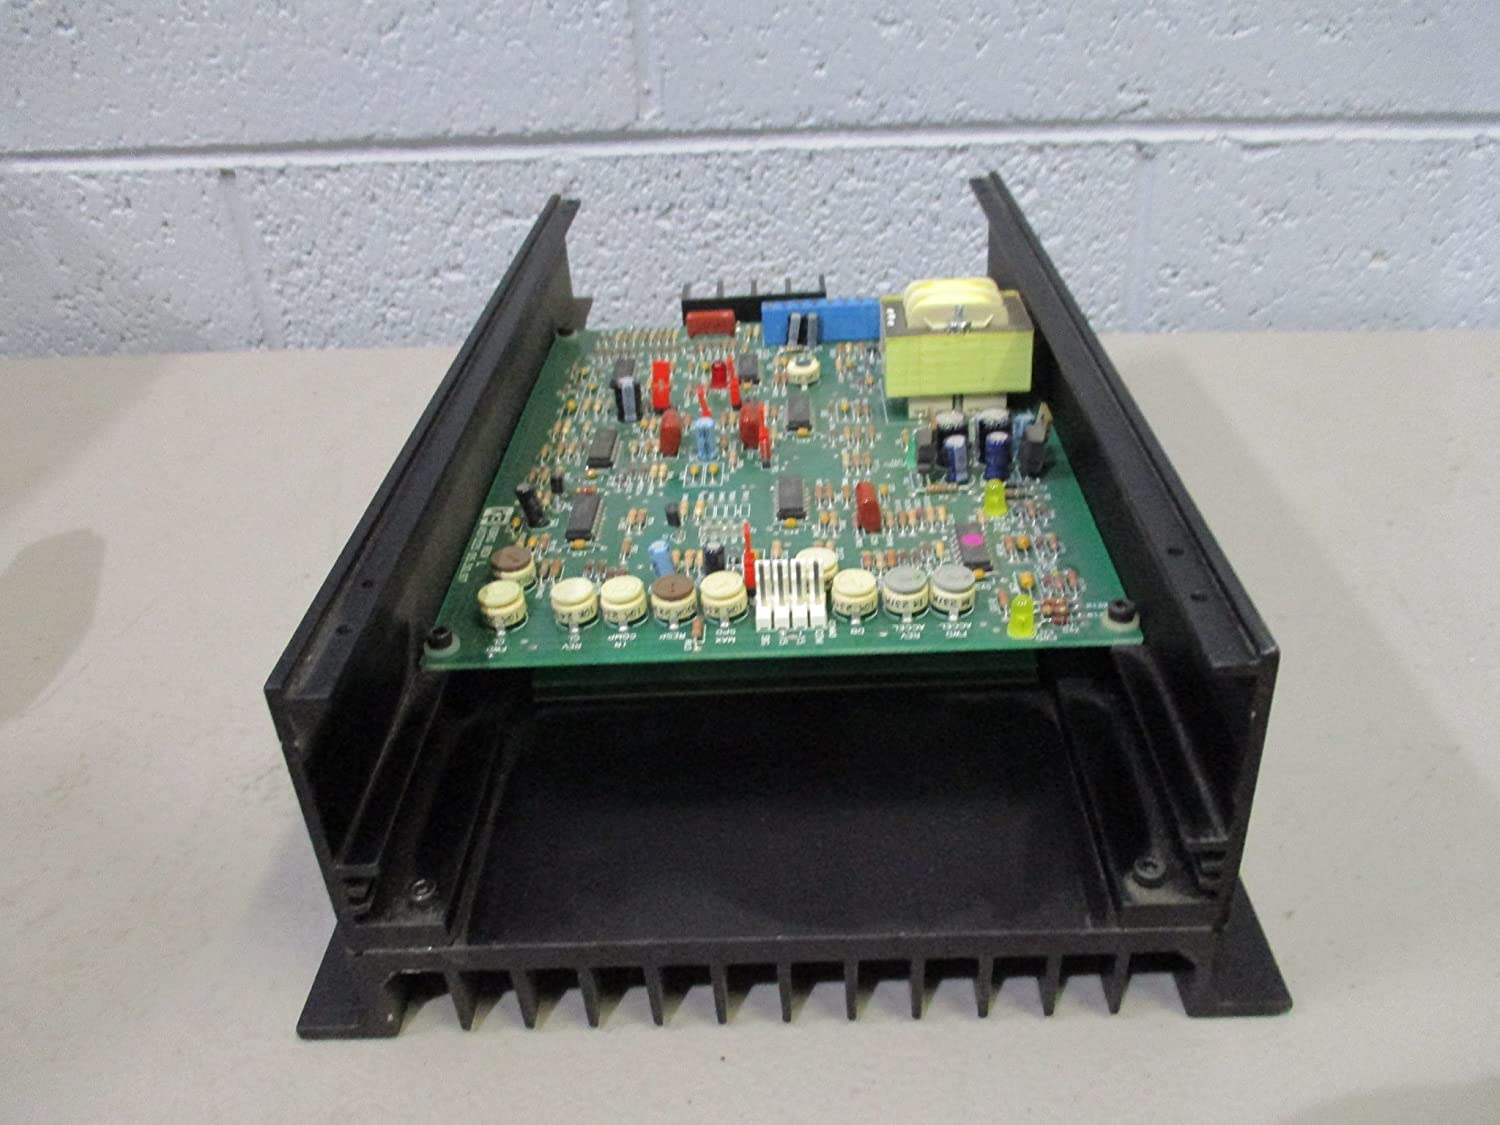 Today's only KB Electronics 8821 KBRG-255 Super-cheap 0-180VDC Chassis HP 5 Driv DC